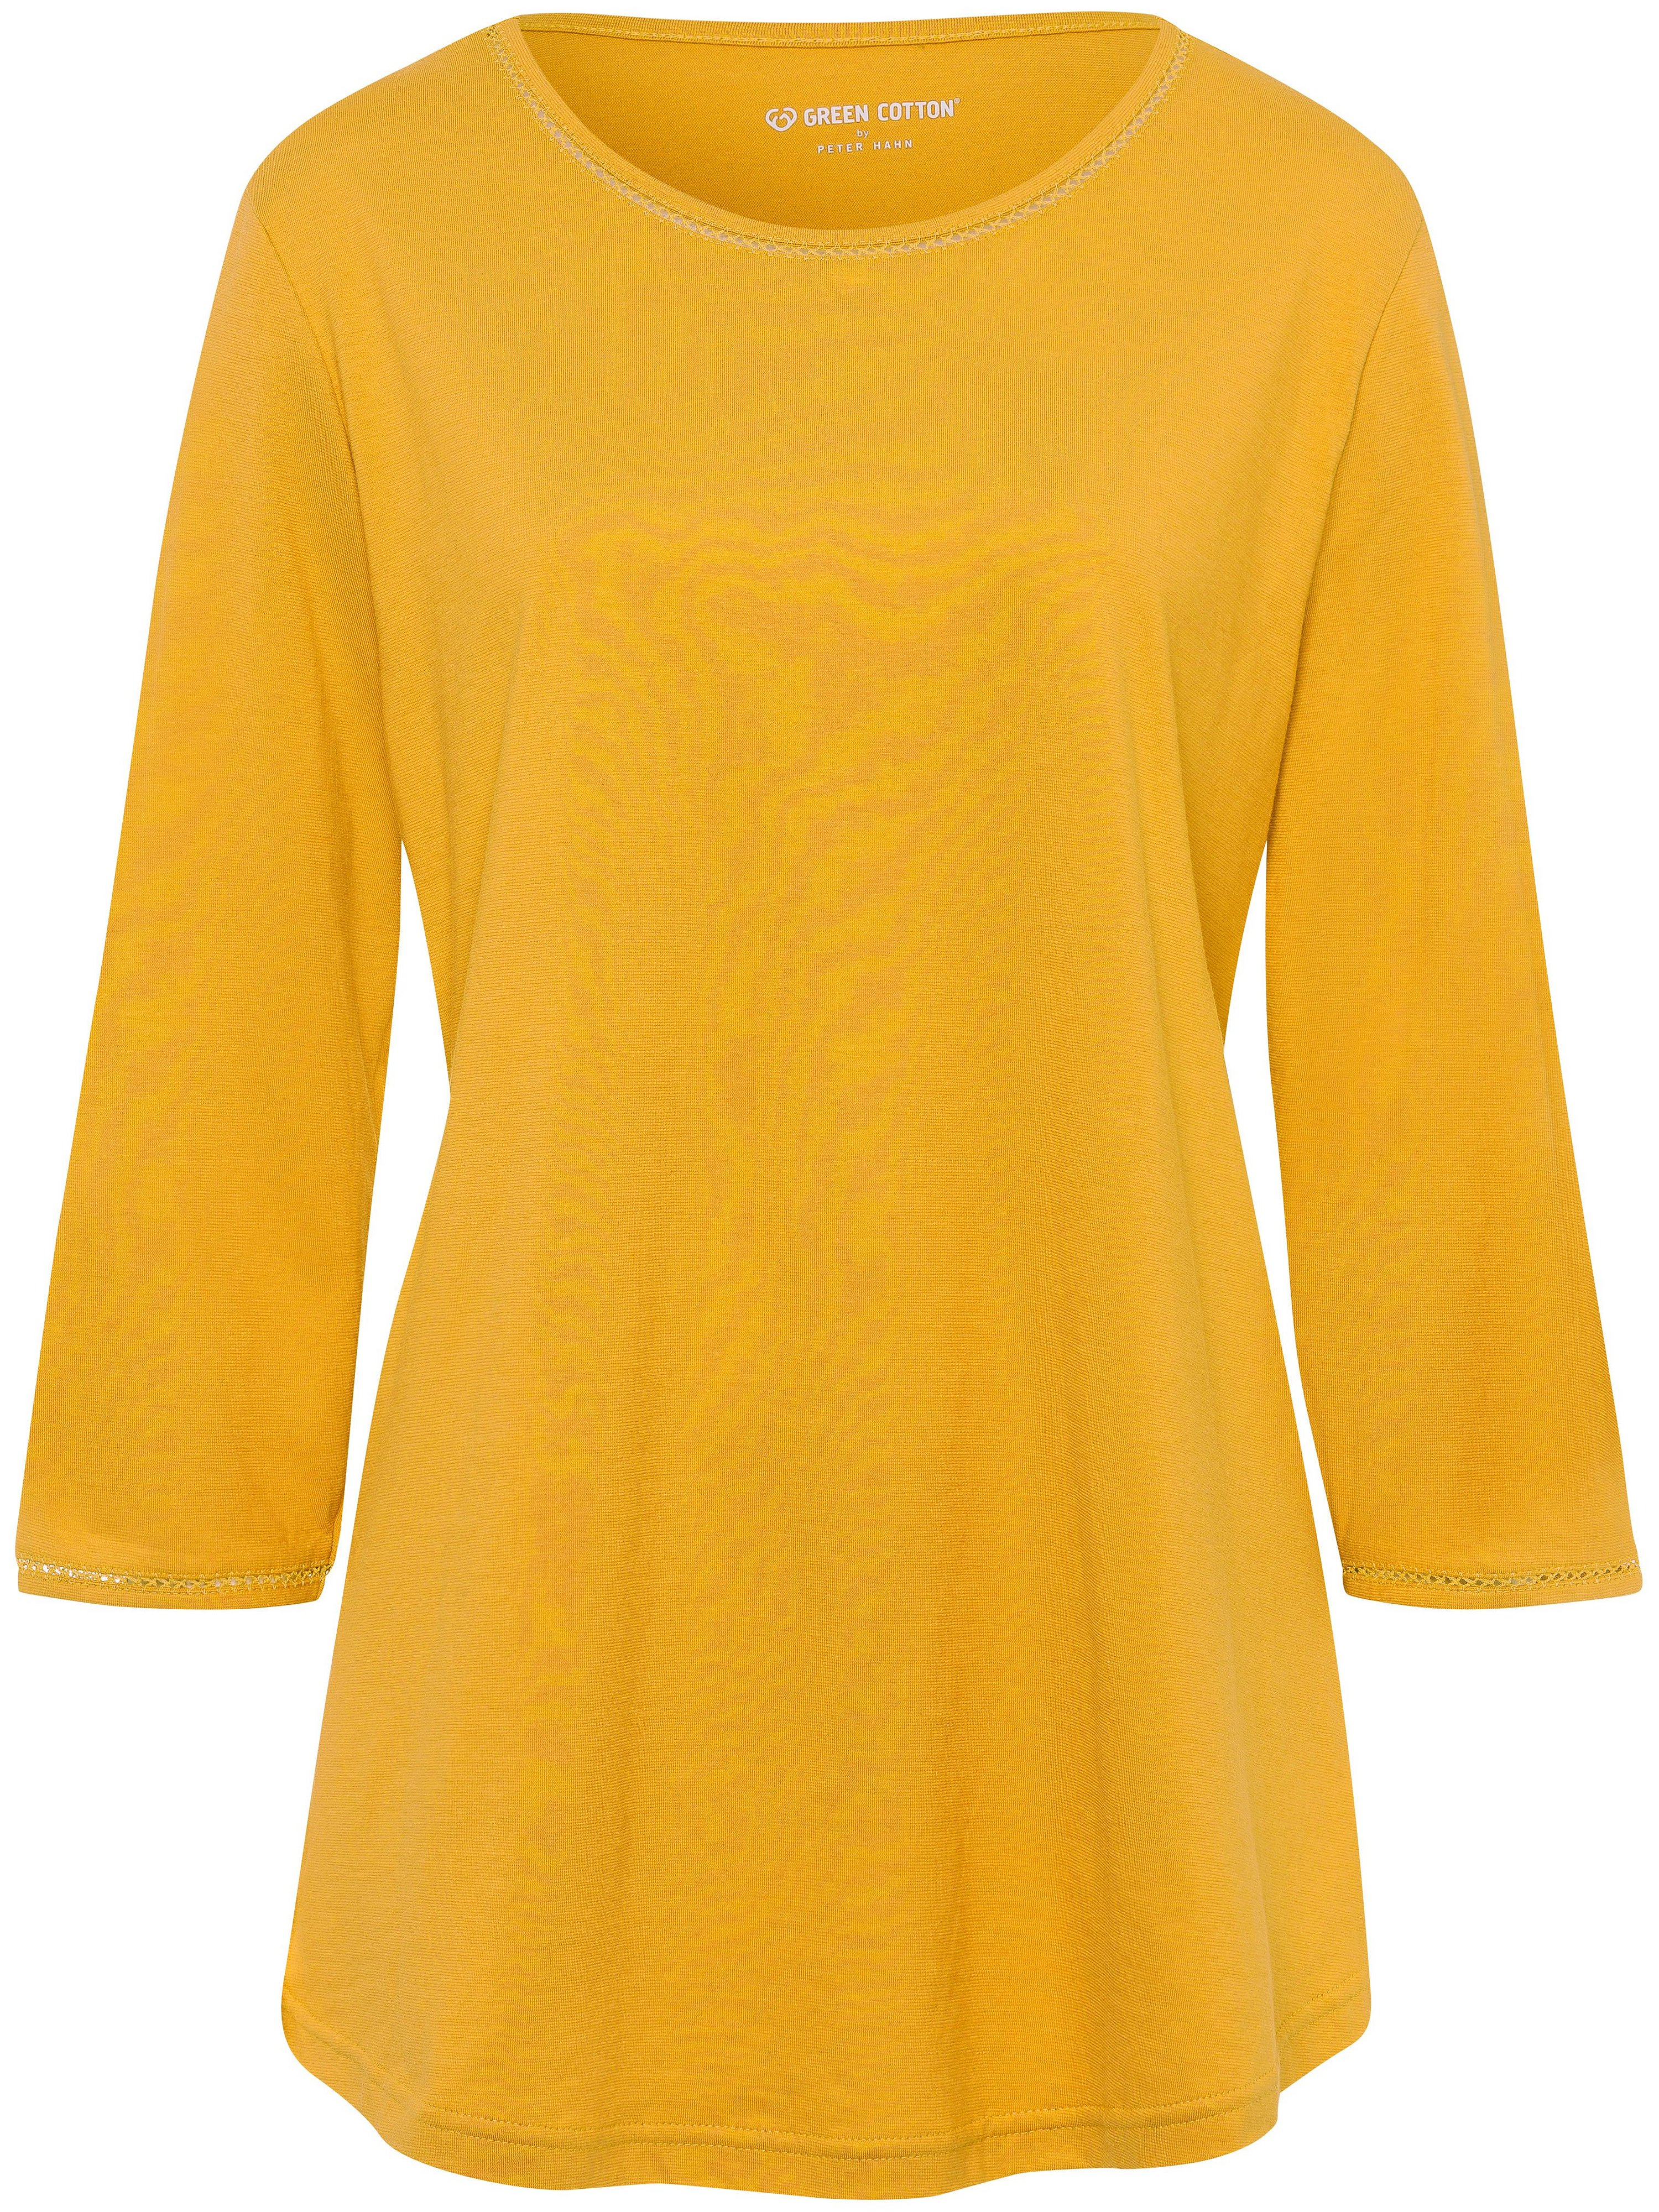 Round neck top in 100% cotton Green Cotton yellow